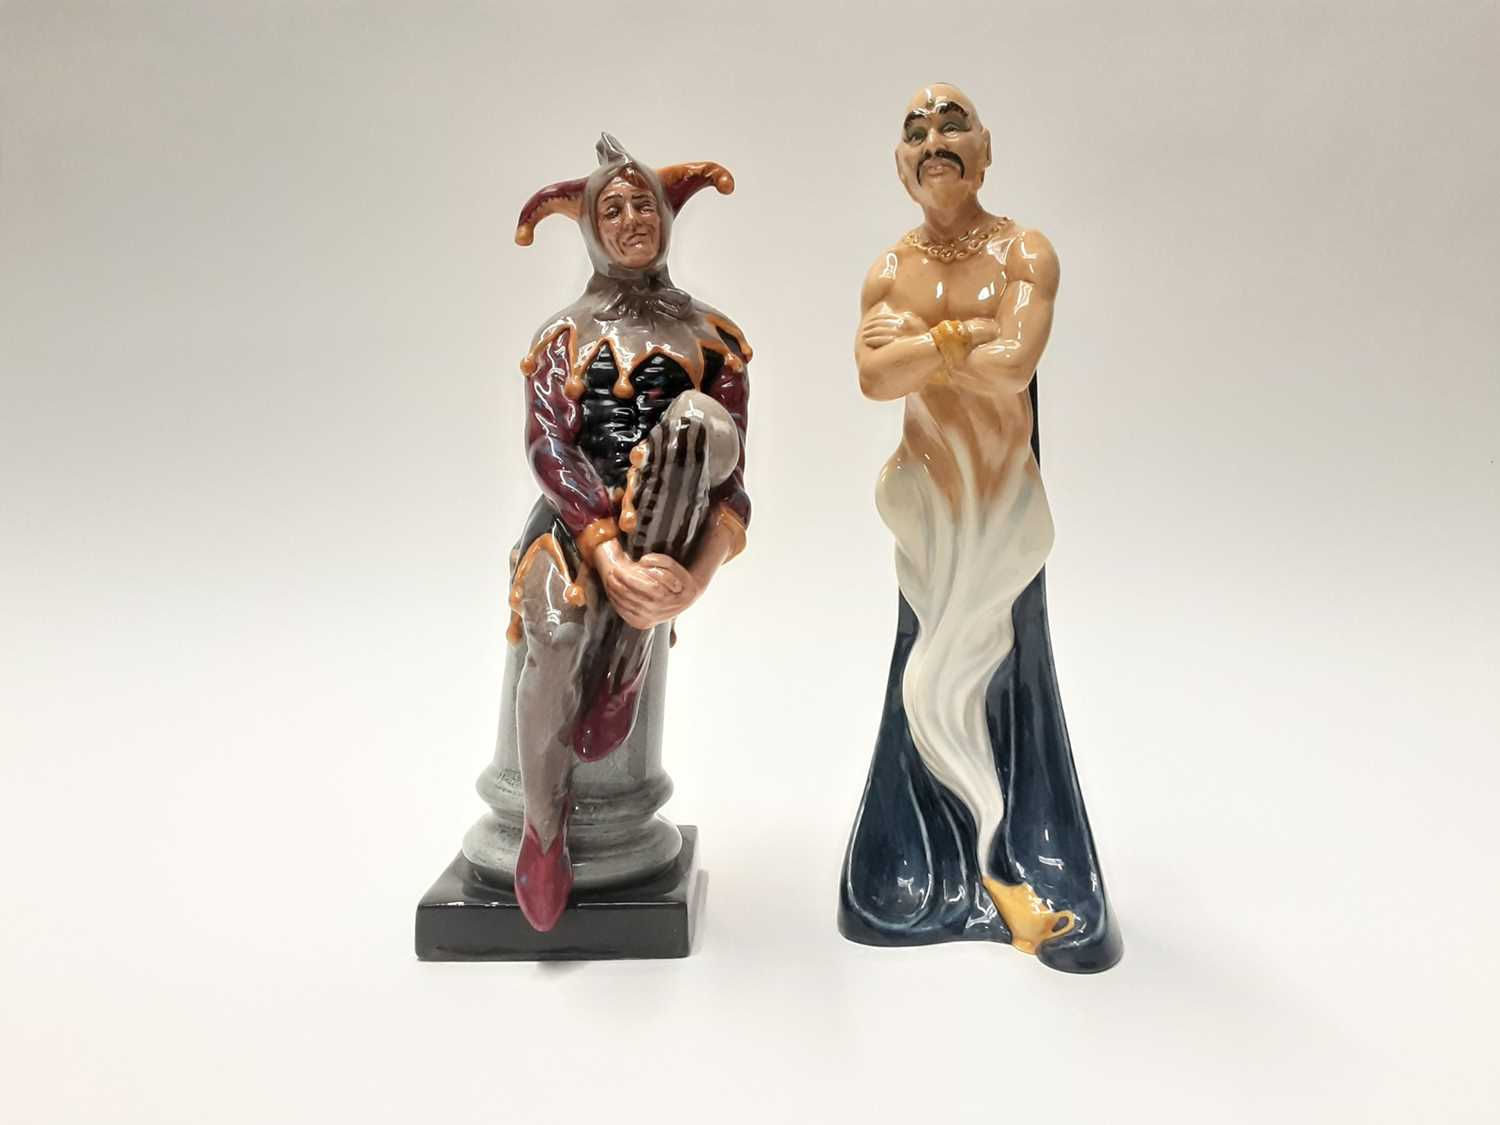 Lot 27 - Two Royal Doulton figures - The Genie HN2989 and The Jester HN2016